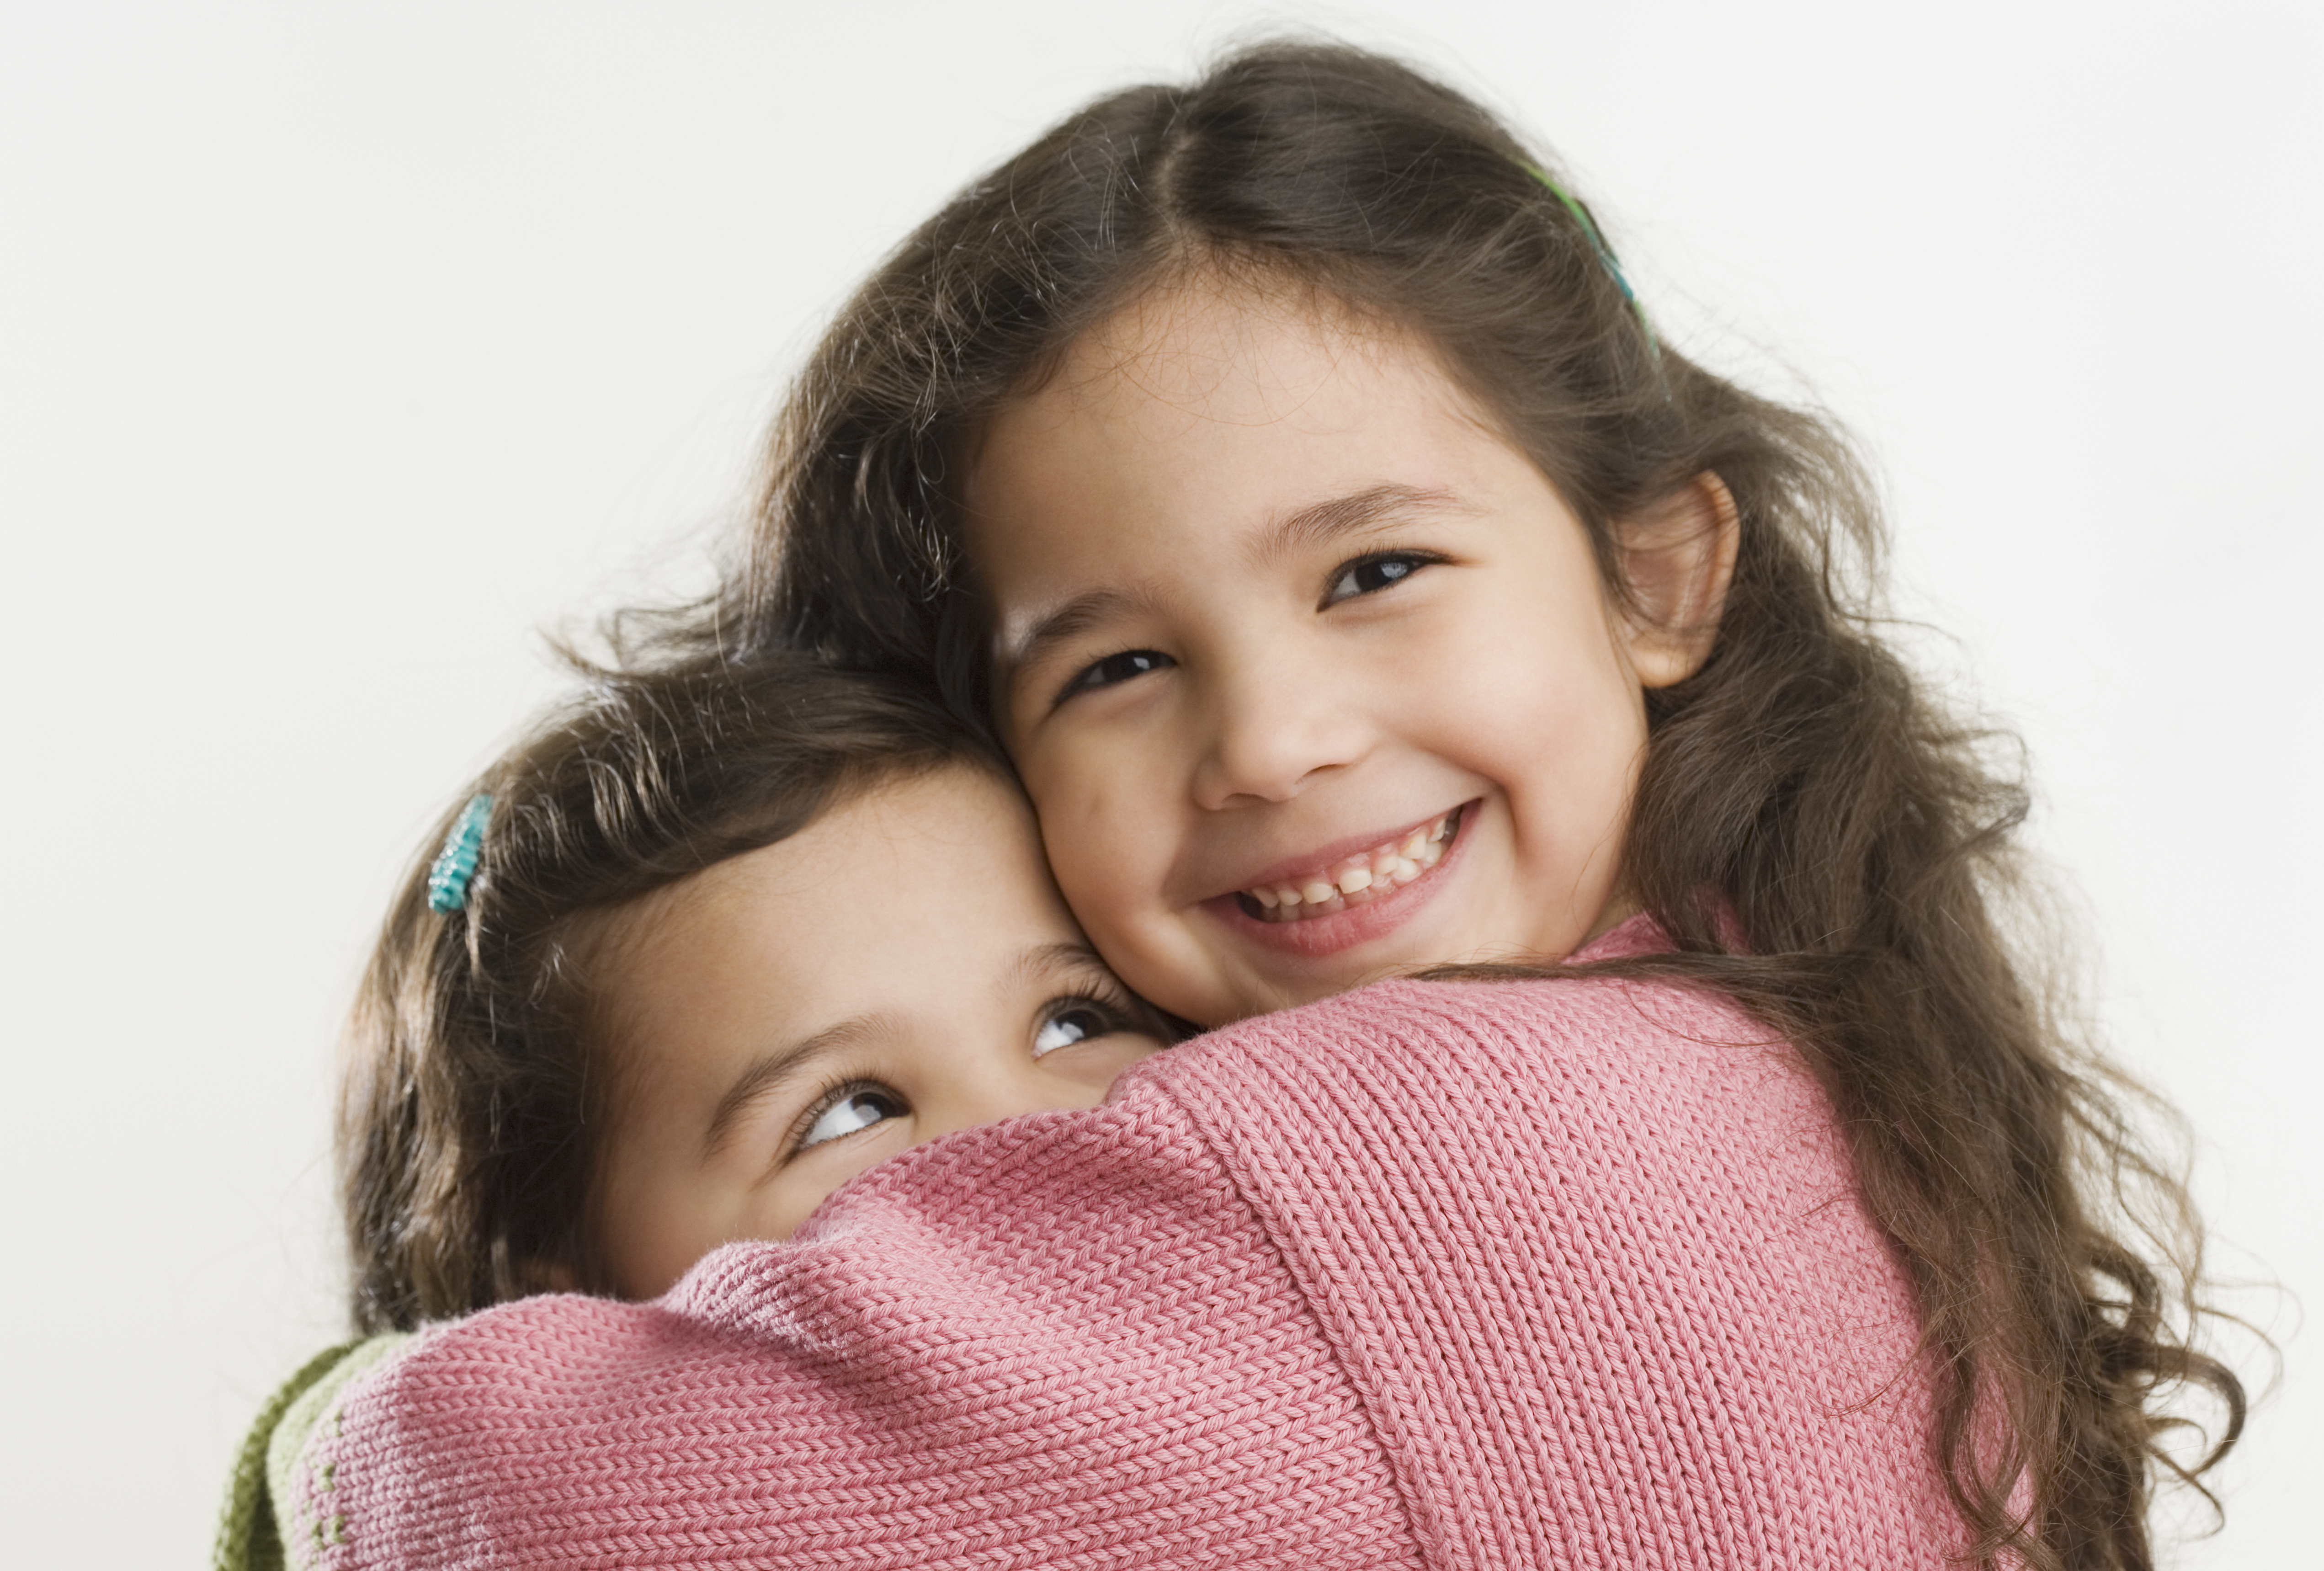 Studio shot of young Hispanic sisters hugging